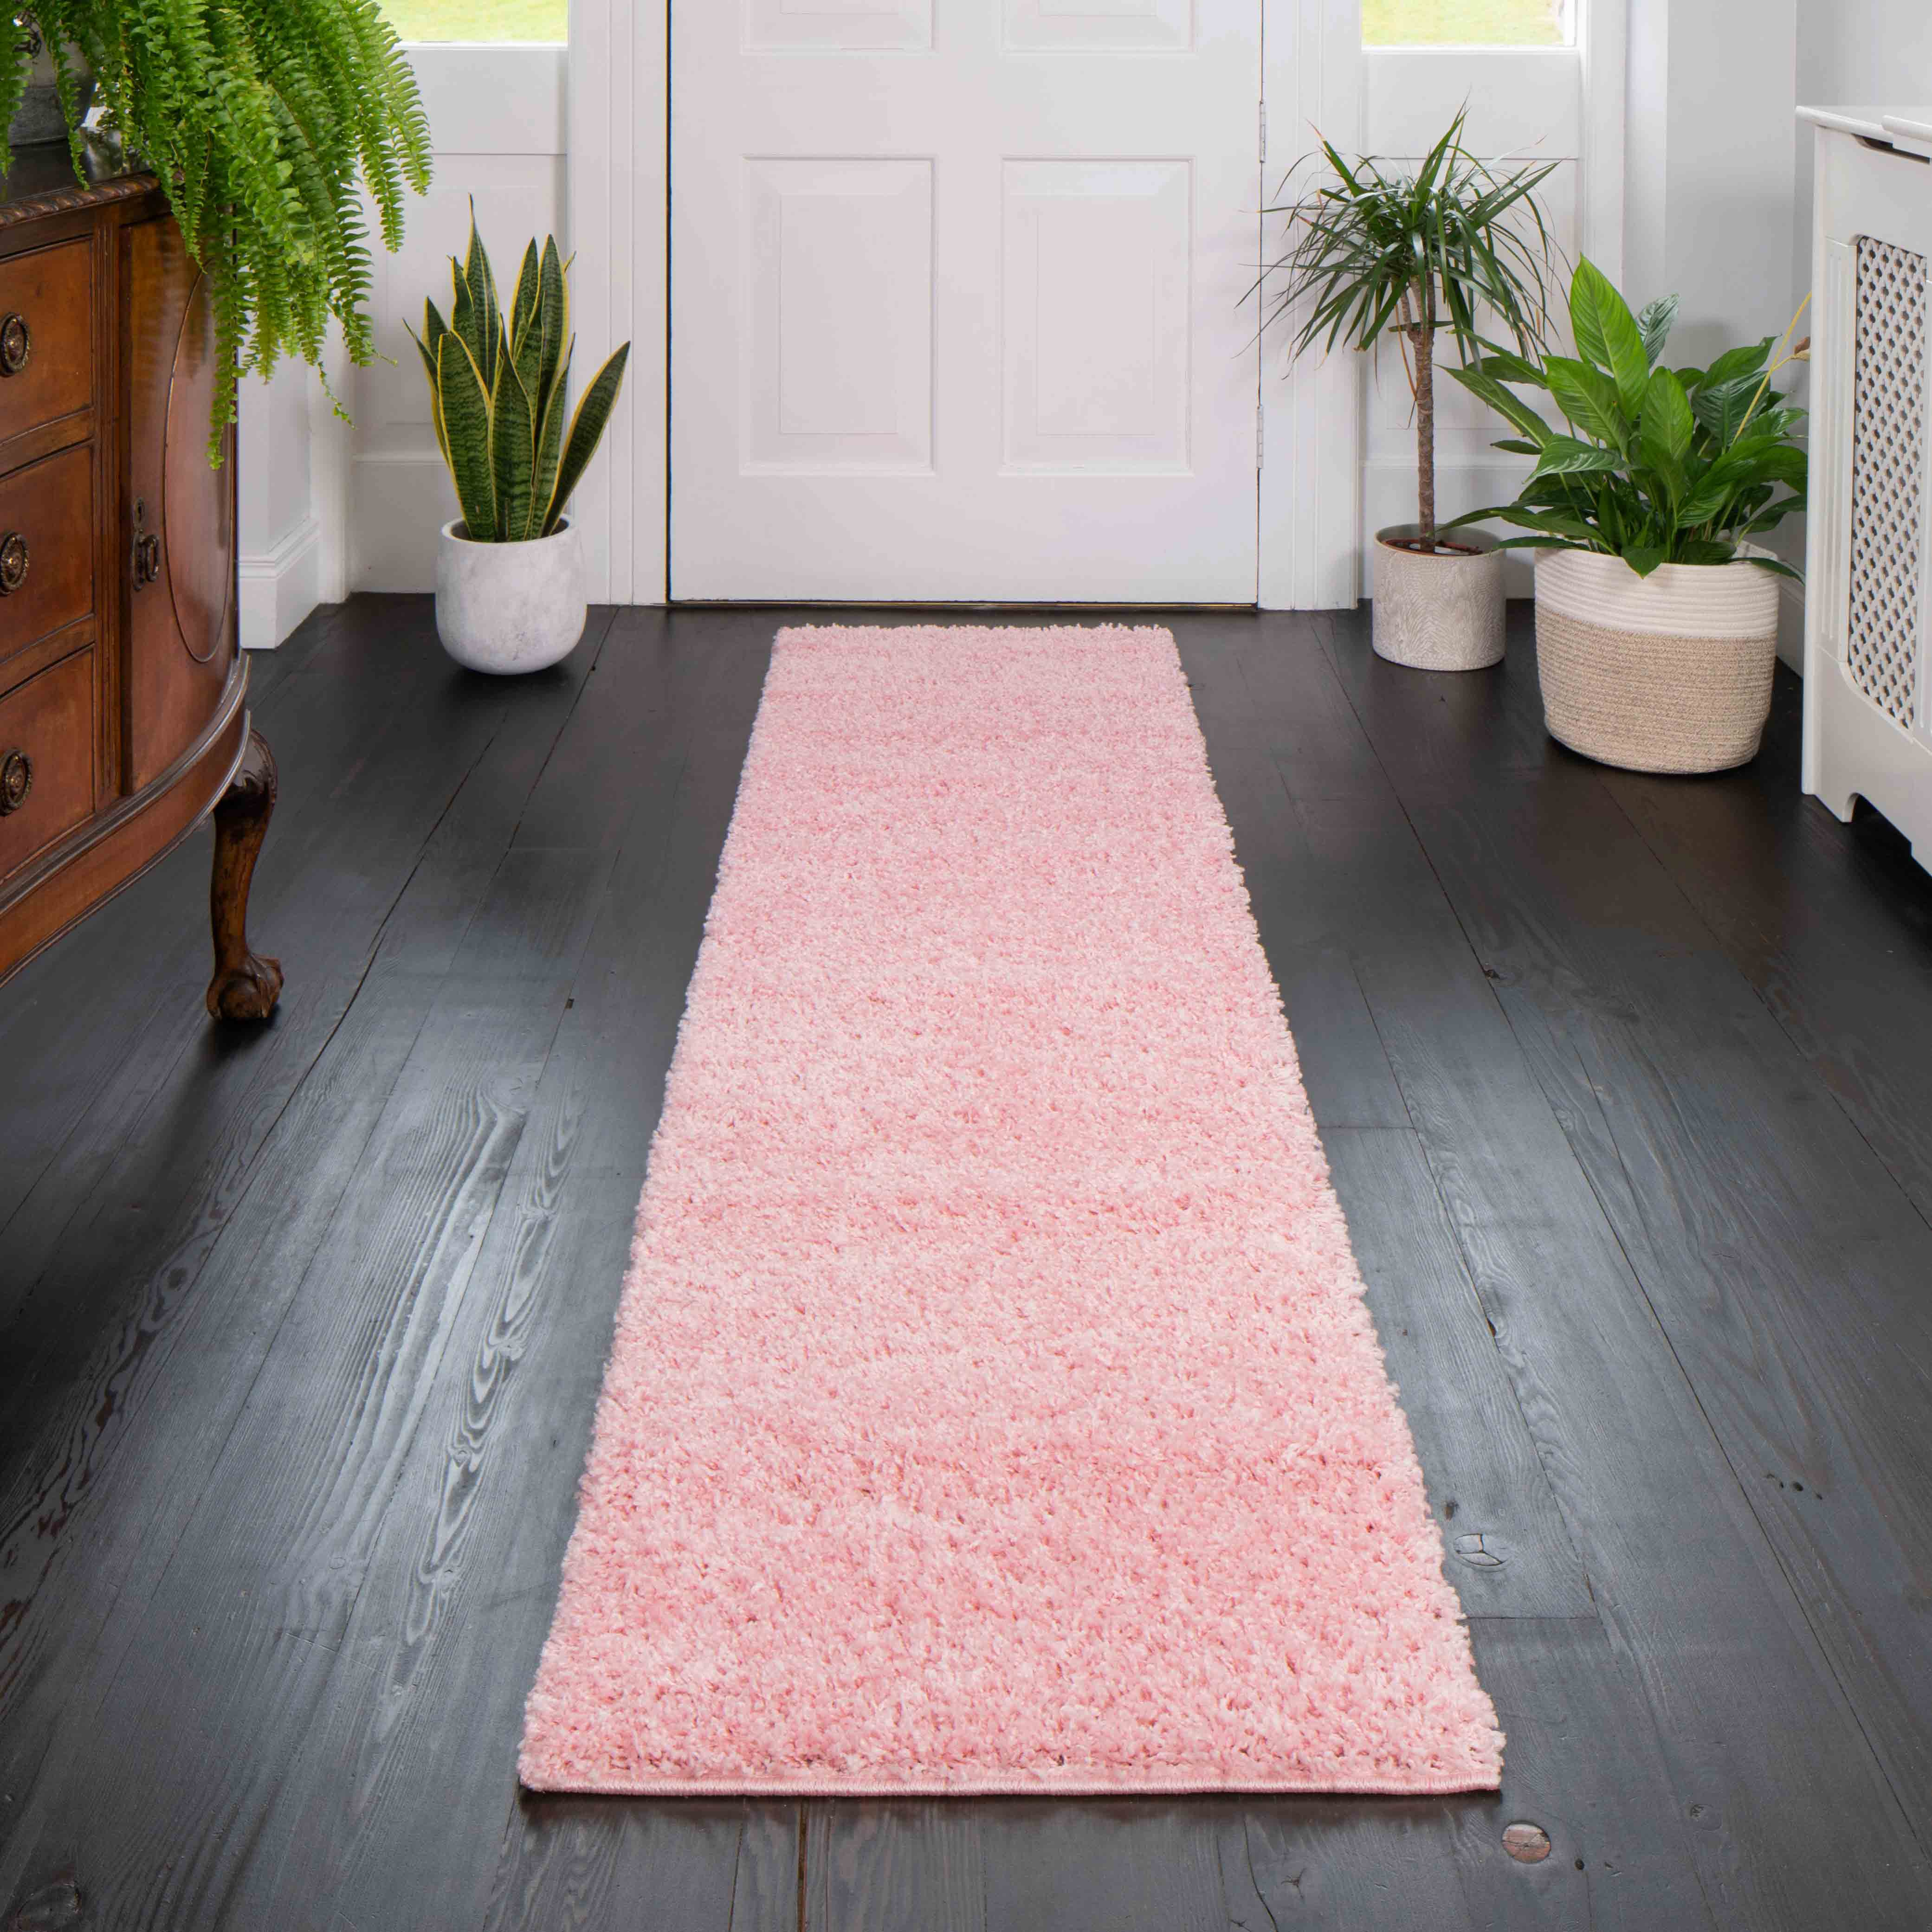 Baby Pink Shaggy Runner Rug - Vancouver